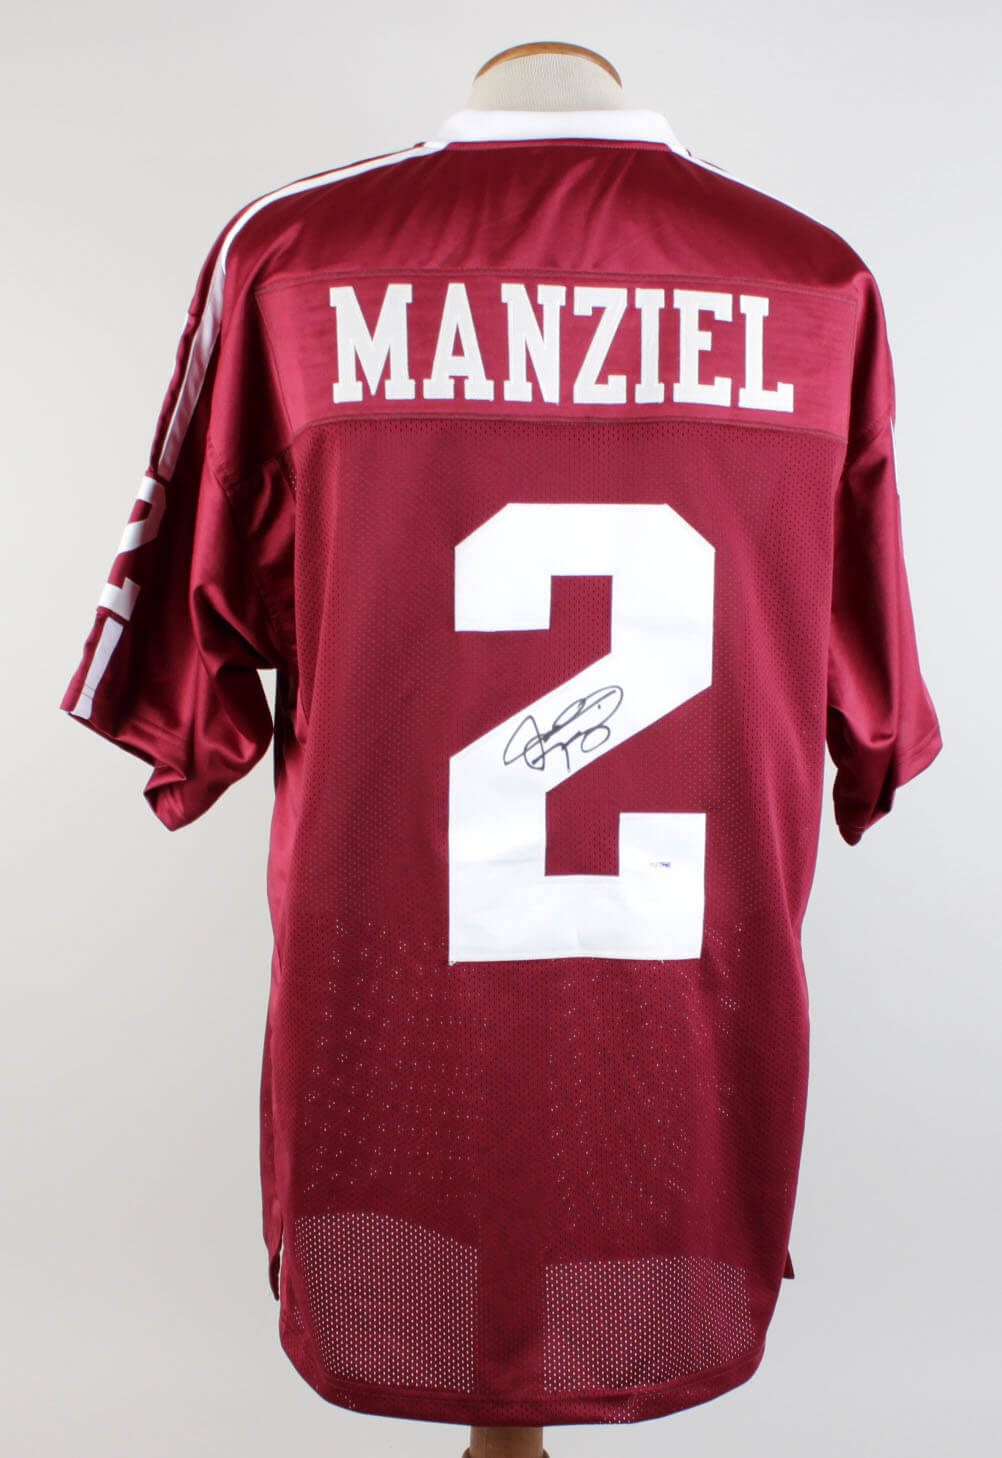 best website c7731 425b9 MANZIEL Johnny Football Signed Texas A&M Aggies Jersey